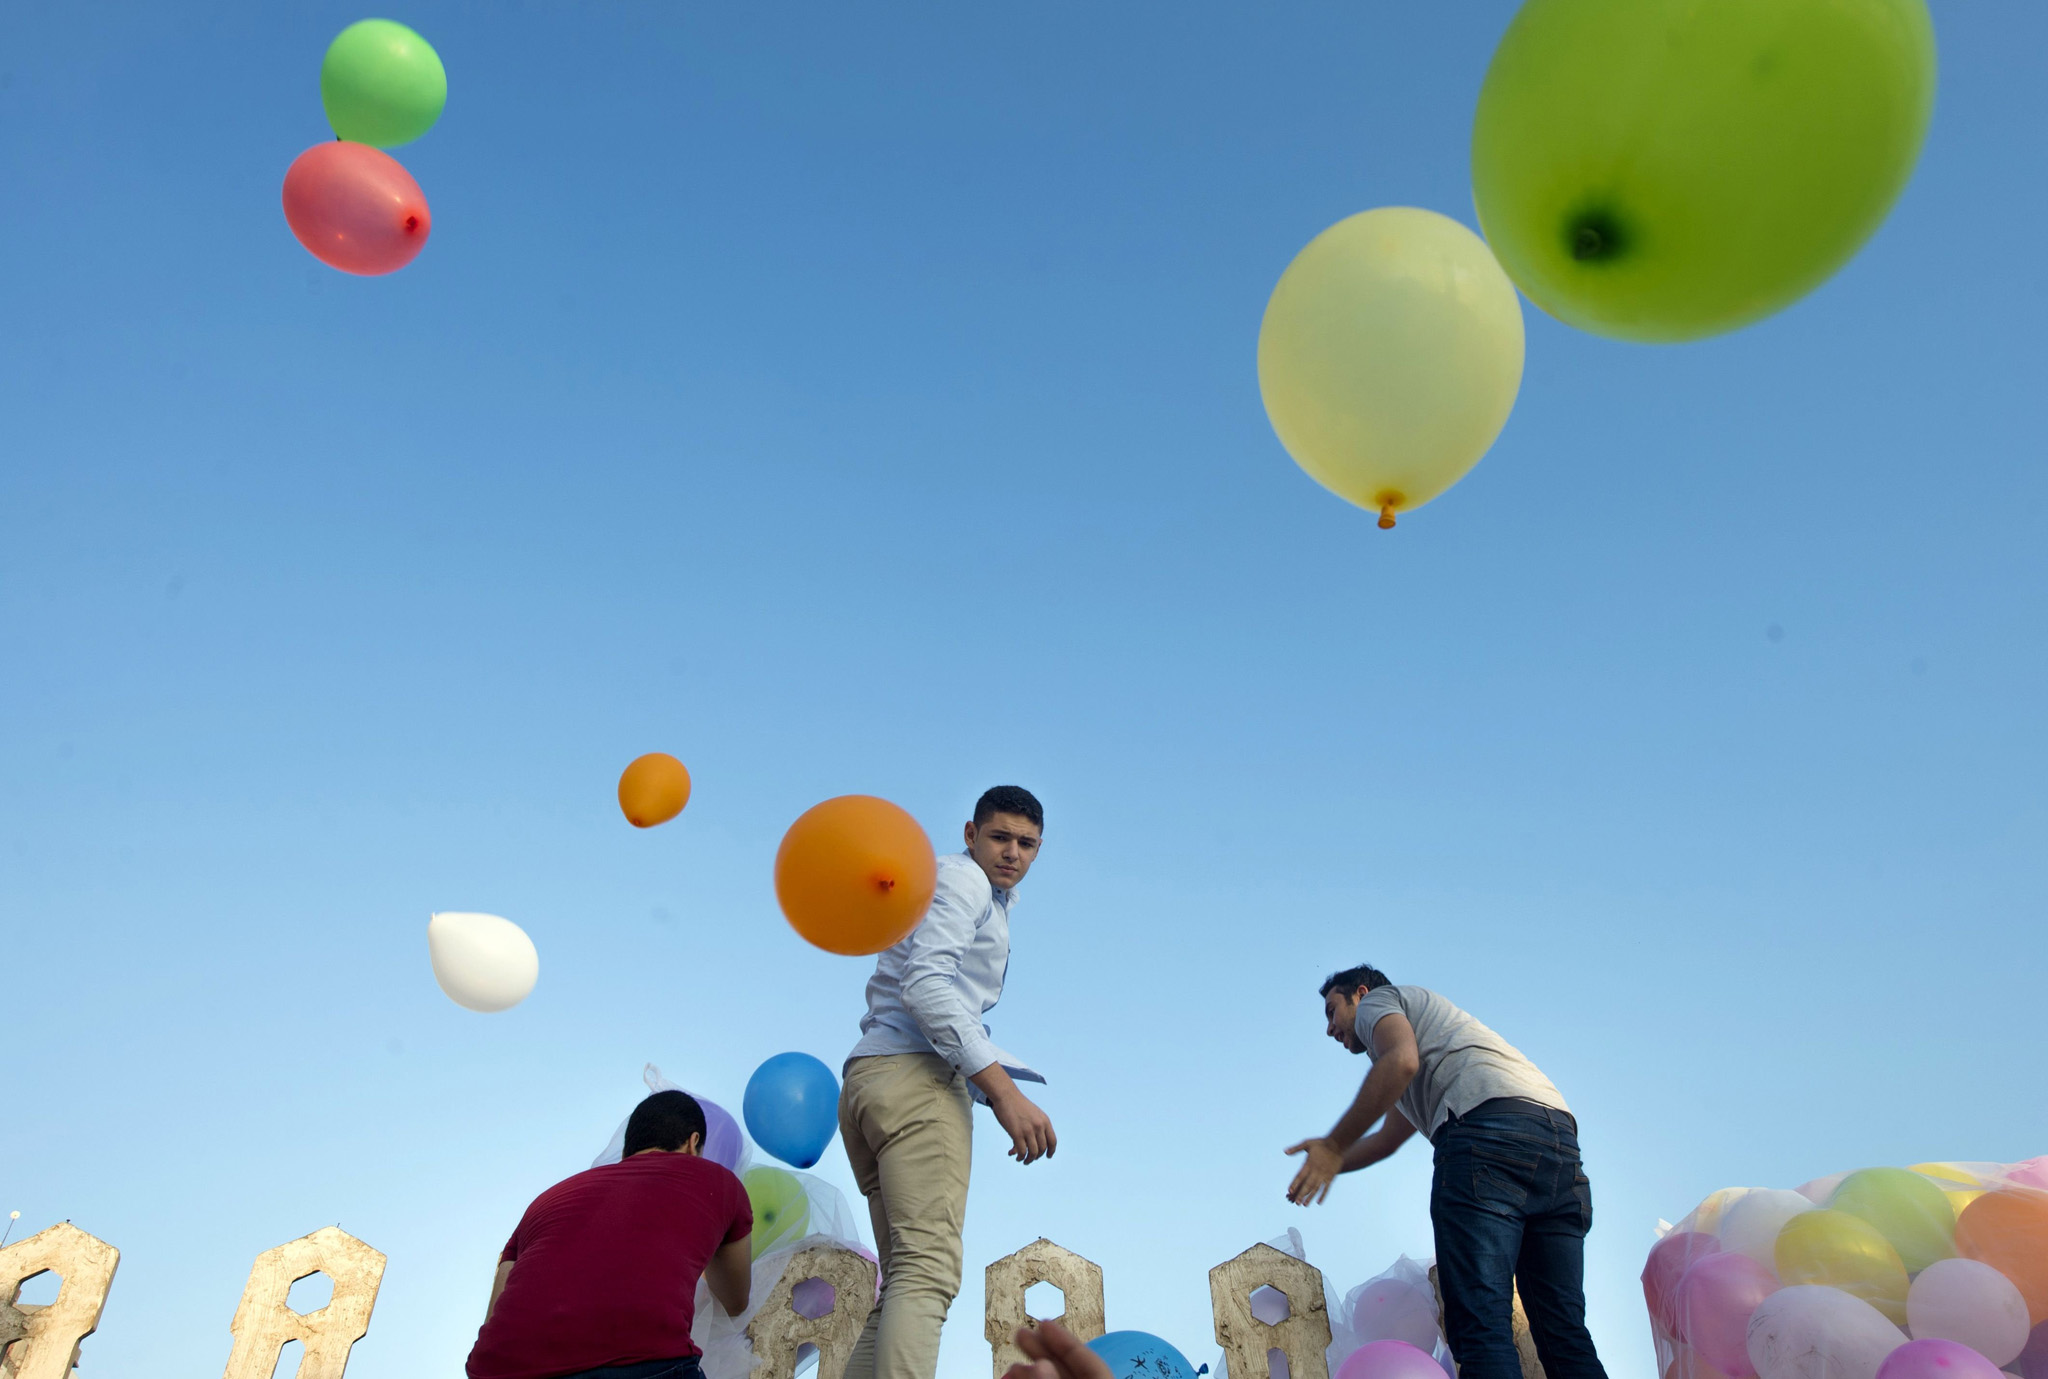 Egyptian Muslims release balloons from the roof top of a mosque at the end of prayers on the first day of Eid al-Fitr holiday that marks the end of the holy fasting month of Ramadan on July 6, 2016 in the Nile Delta city of Mansura, some 120 kms north of Cairo.  Muslims worldwide celebrate Eid al-Fitr marking the end of the fasting month of Ramadan.  / AFP PHOTO / KHALED DESOUKIKHALED DESOUKI/AFP/Getty Images